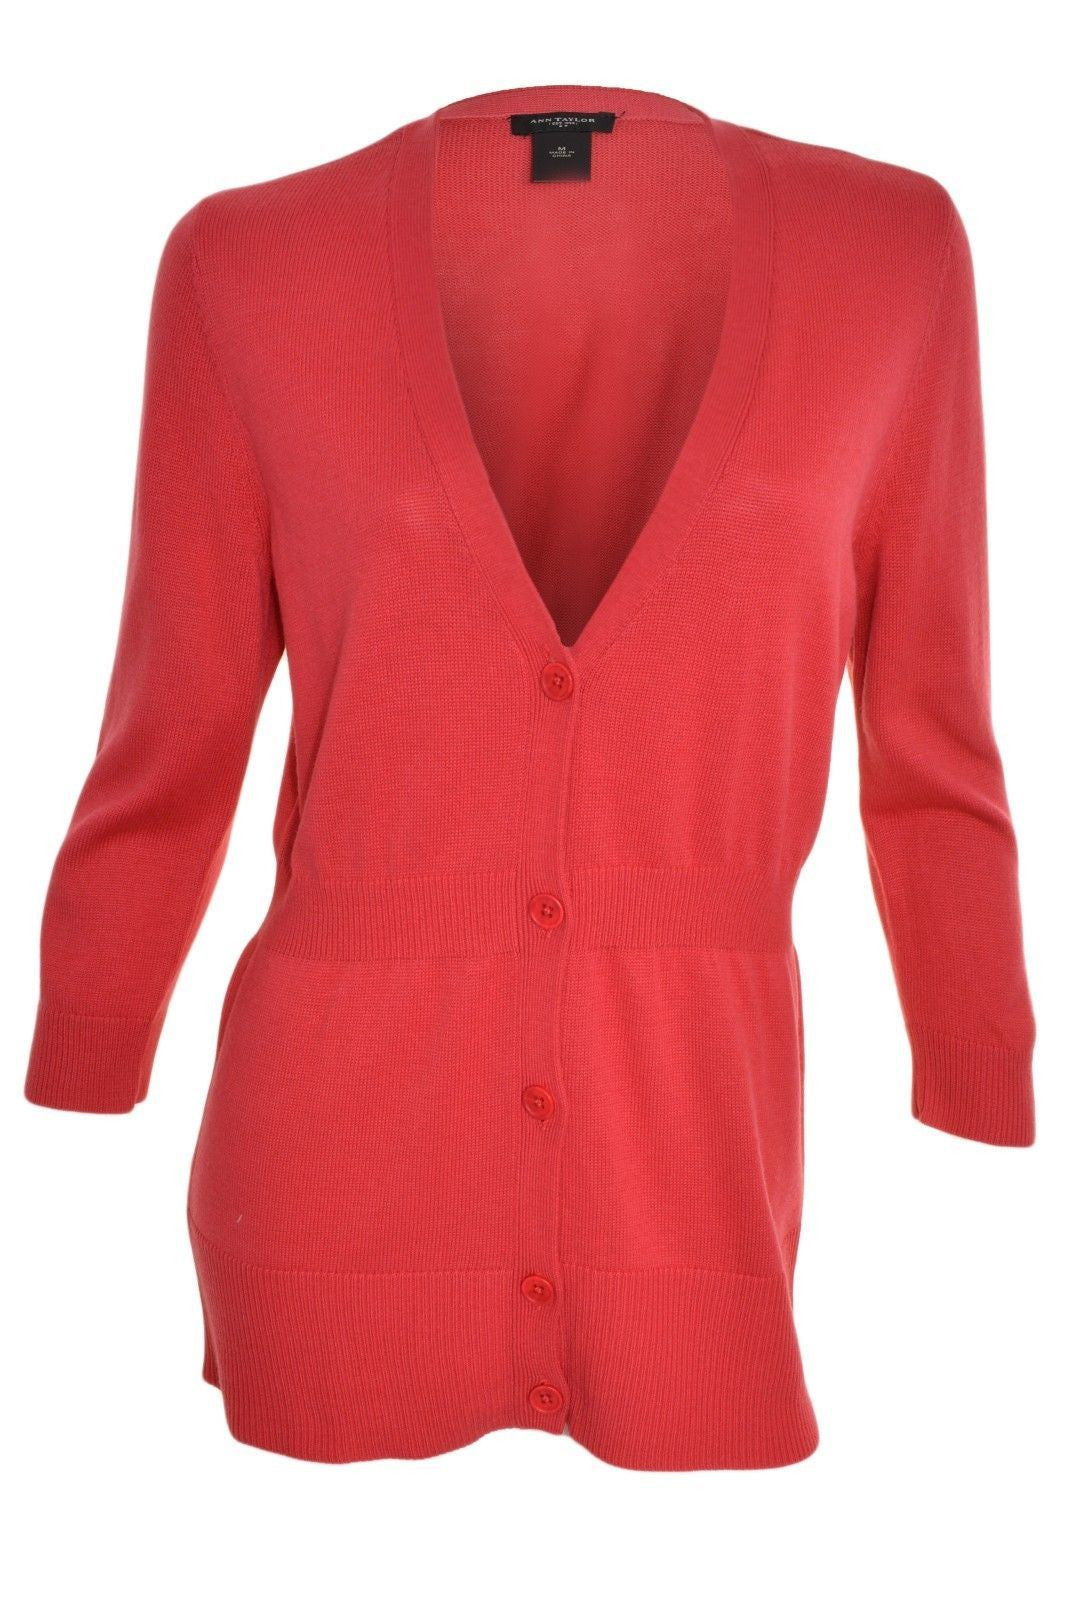 Ann Taylor Long V-Neck Cardigan (Strawberry Pink),Cardigan,Ann Taylor - Discount Divas